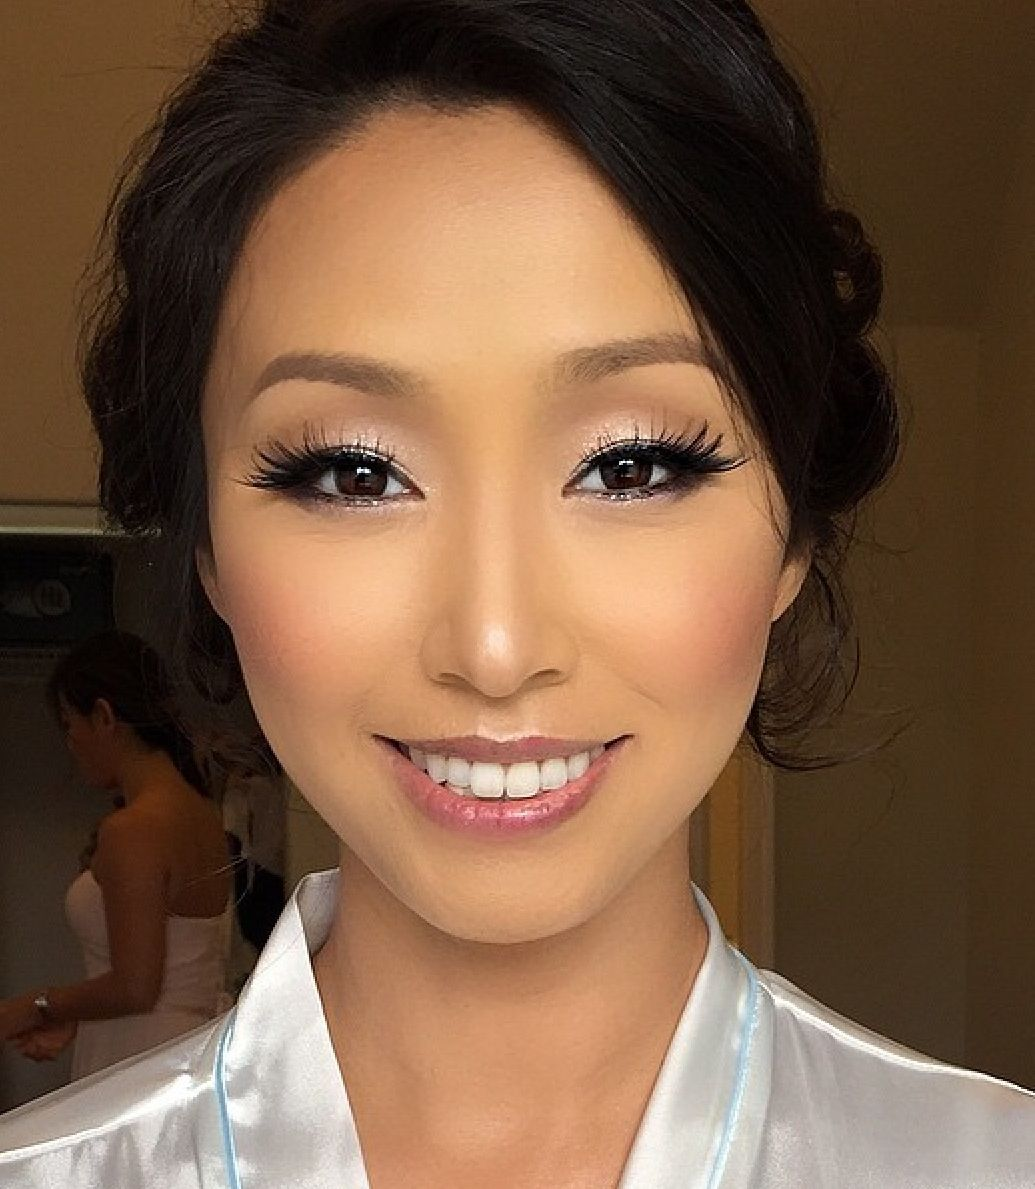 "UZMEE KRAKOVSZKI on Instagram: ""#Closeup #bridemakeup #MakeupbyUzmee #HairbyUzmee #UzmeeBridal"""